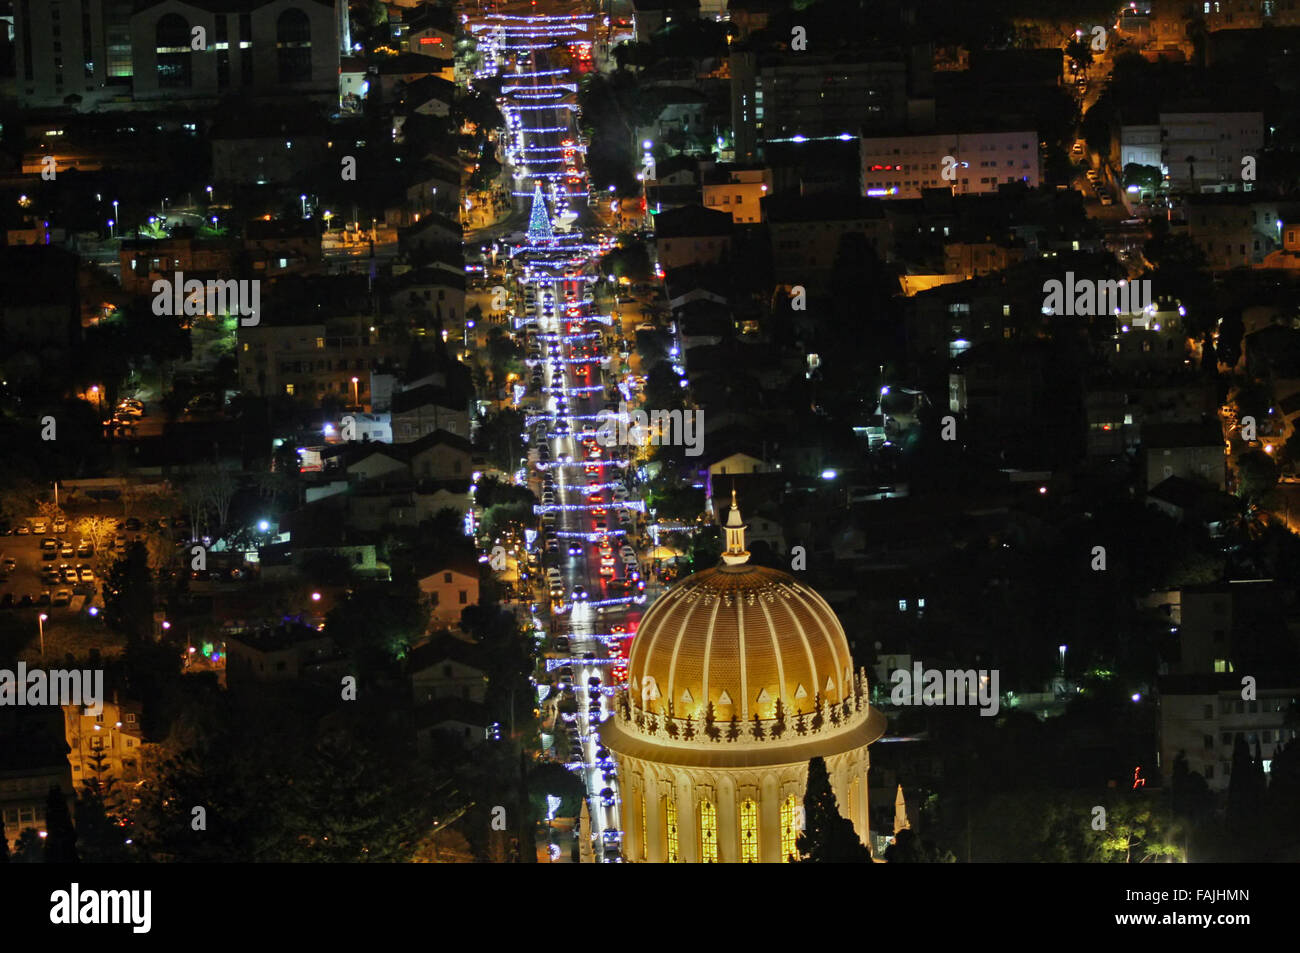 Israel, Haifa, The city is lit up with Christmas decorations Photogrphaed December 17th 2015 The Bahai temple in - Stock Image